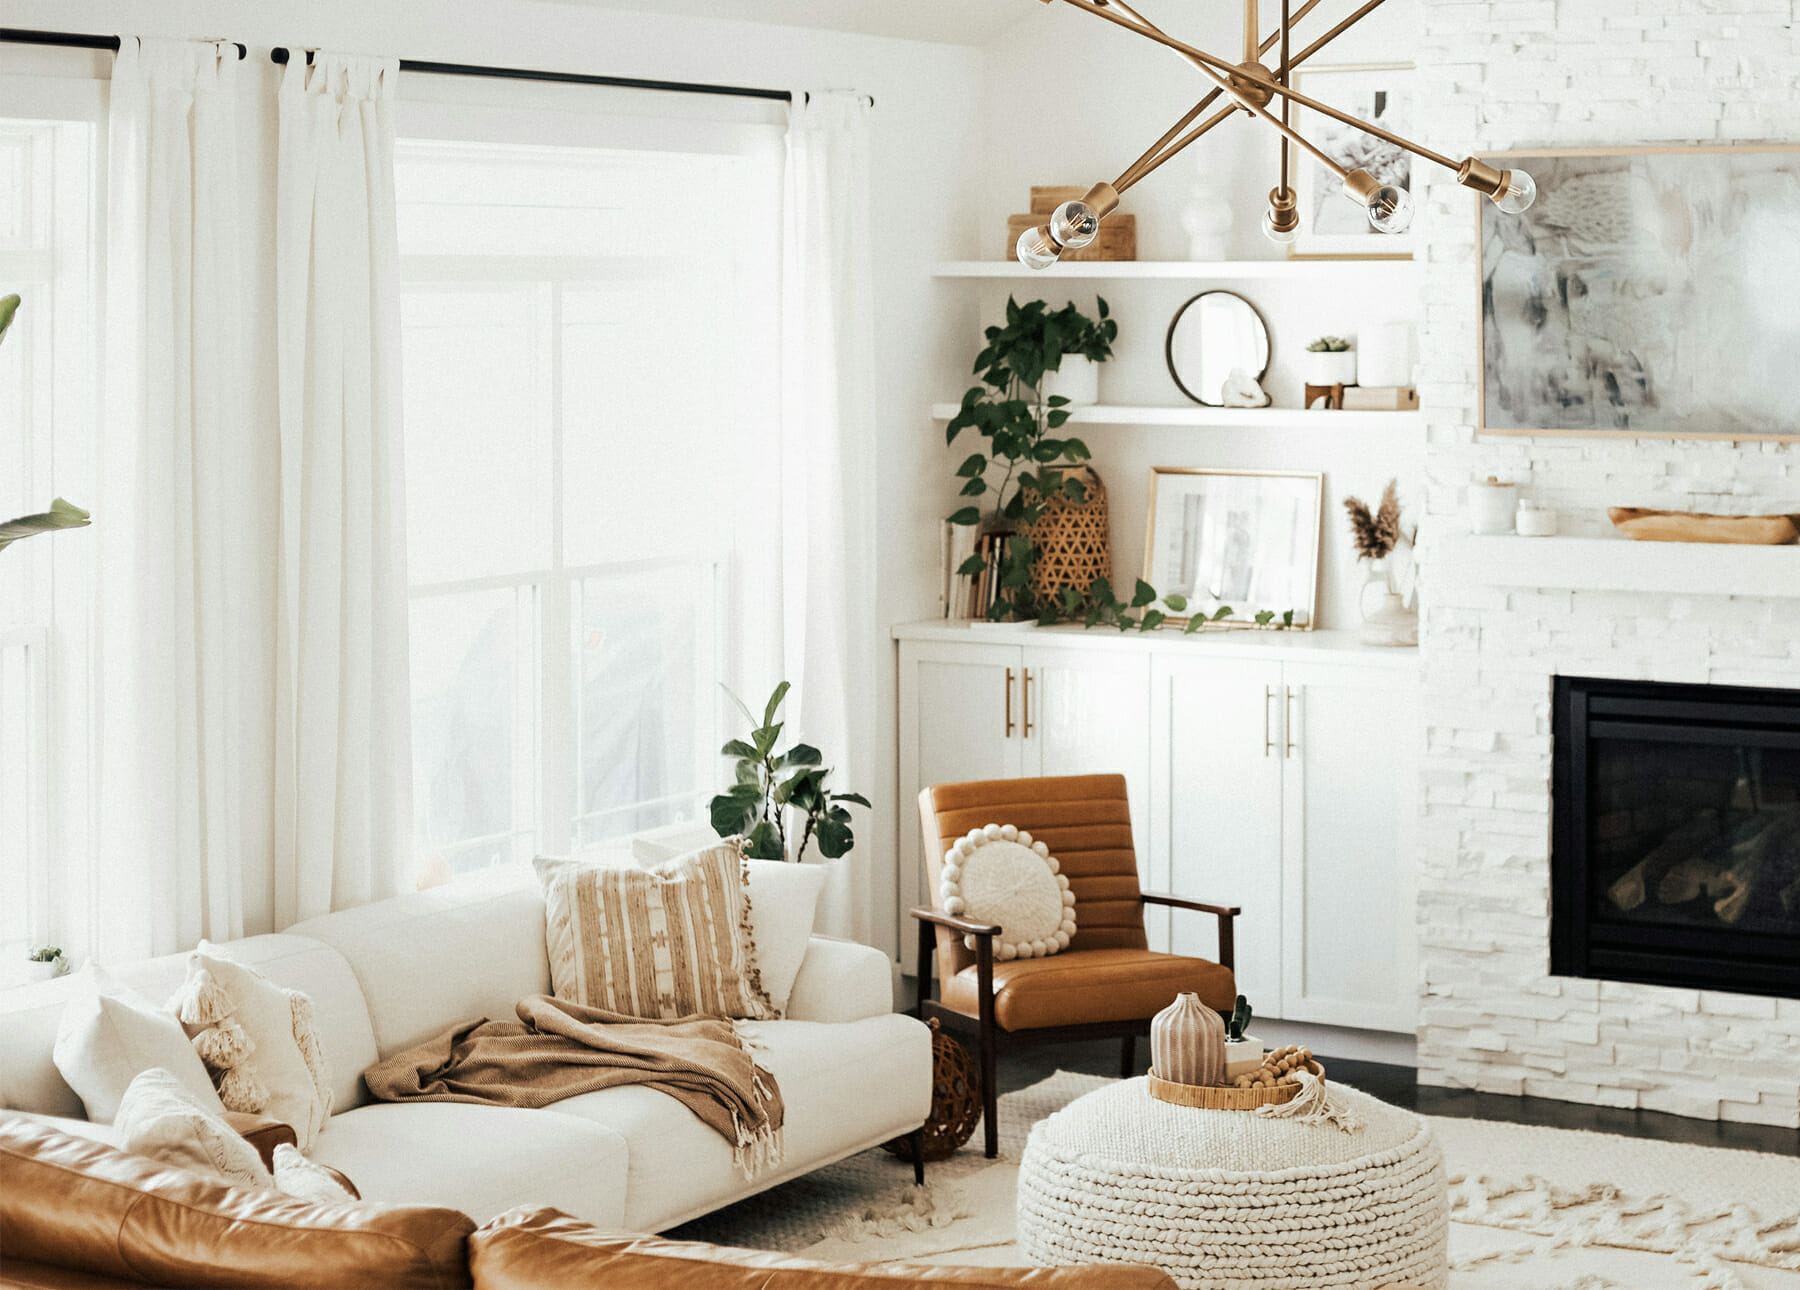 Amy E. Peters' boho living room features Article furniture, white built-in bookshelves and a fireplace